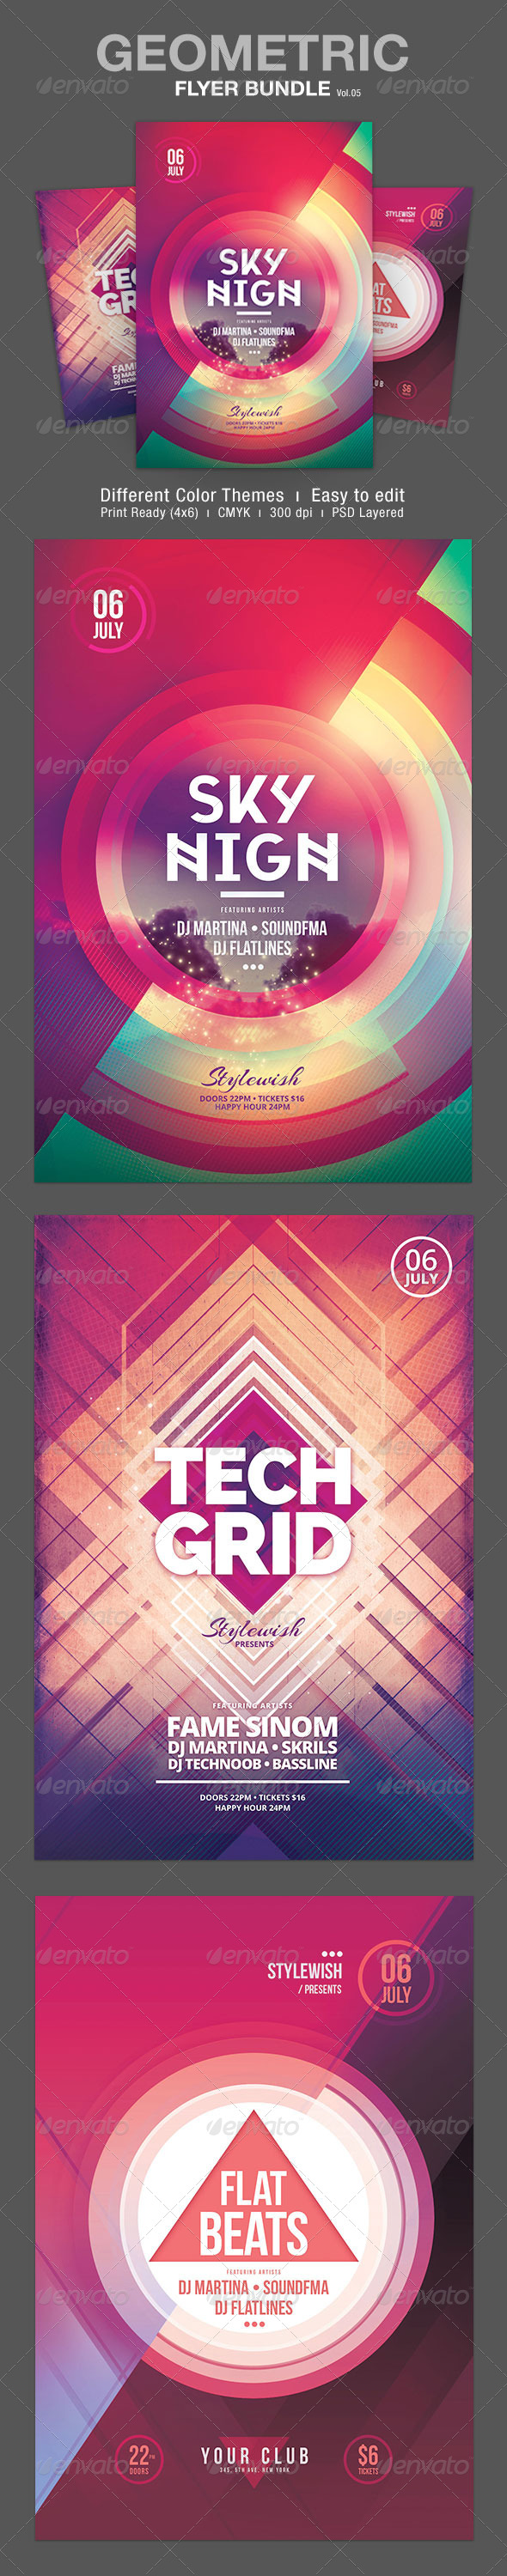 GraphicRiver Geometric Flyer Bundle Vol.05 7905746